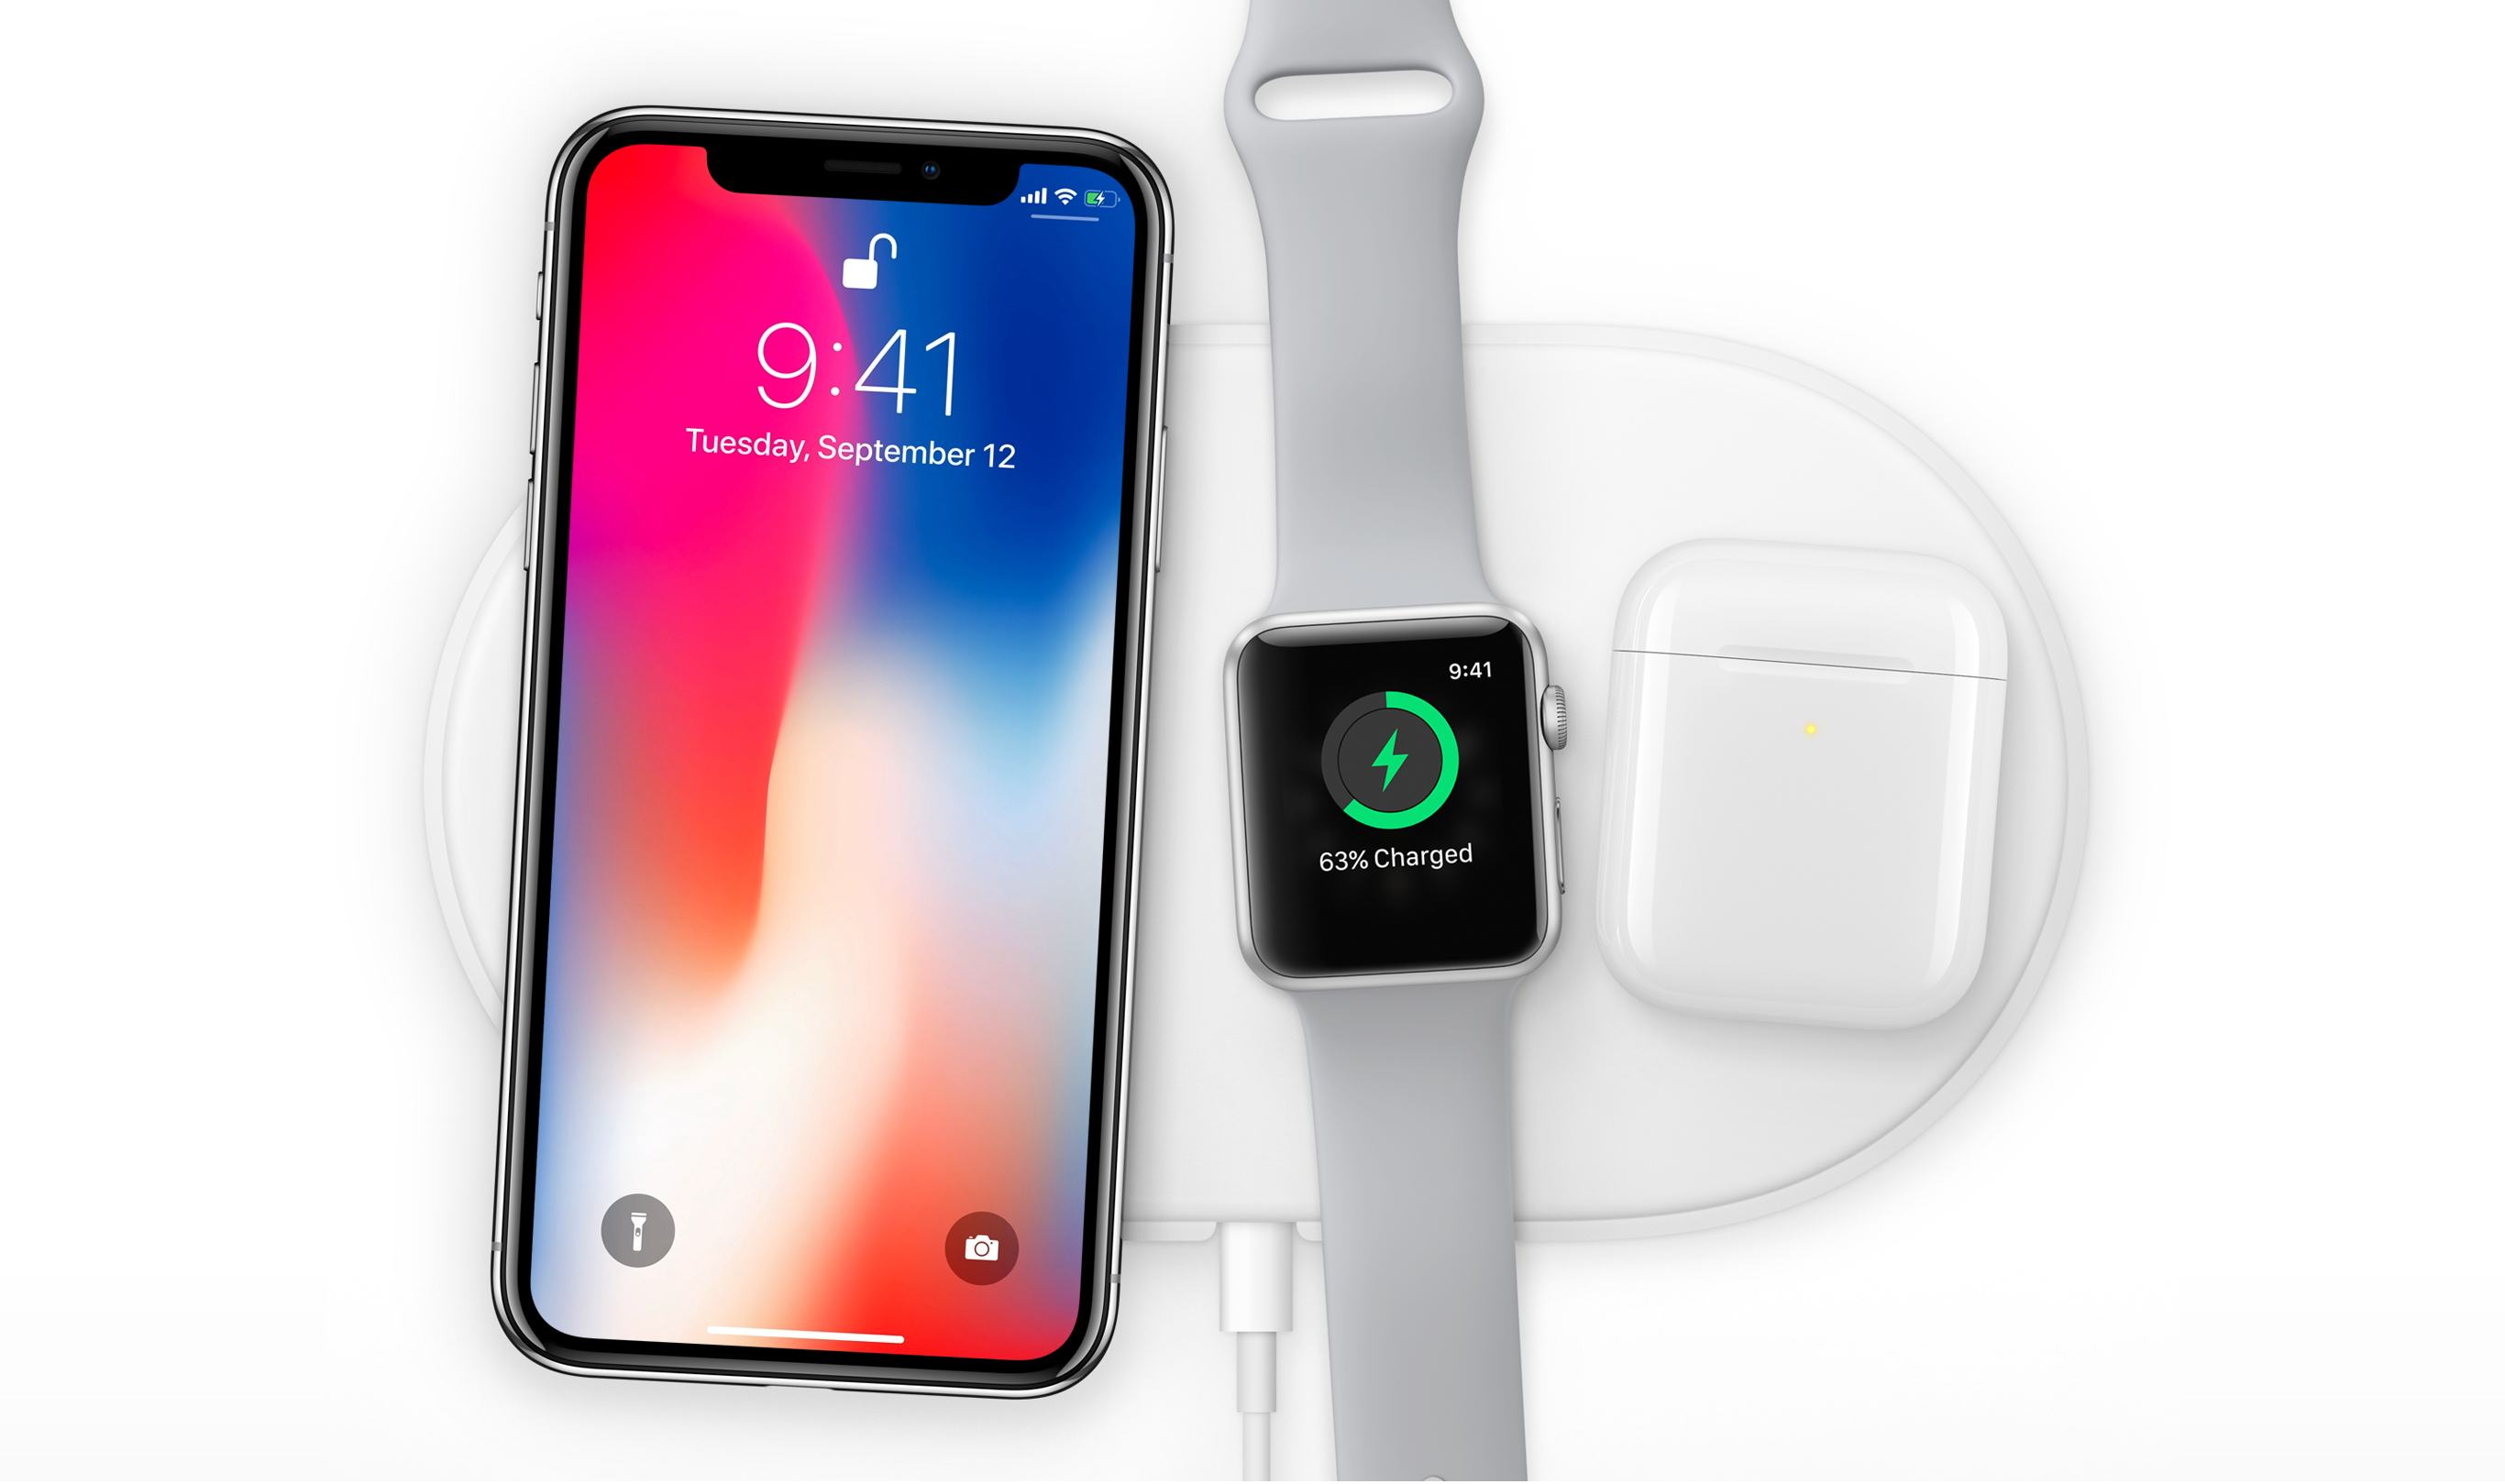 Apple watch with iPhone X